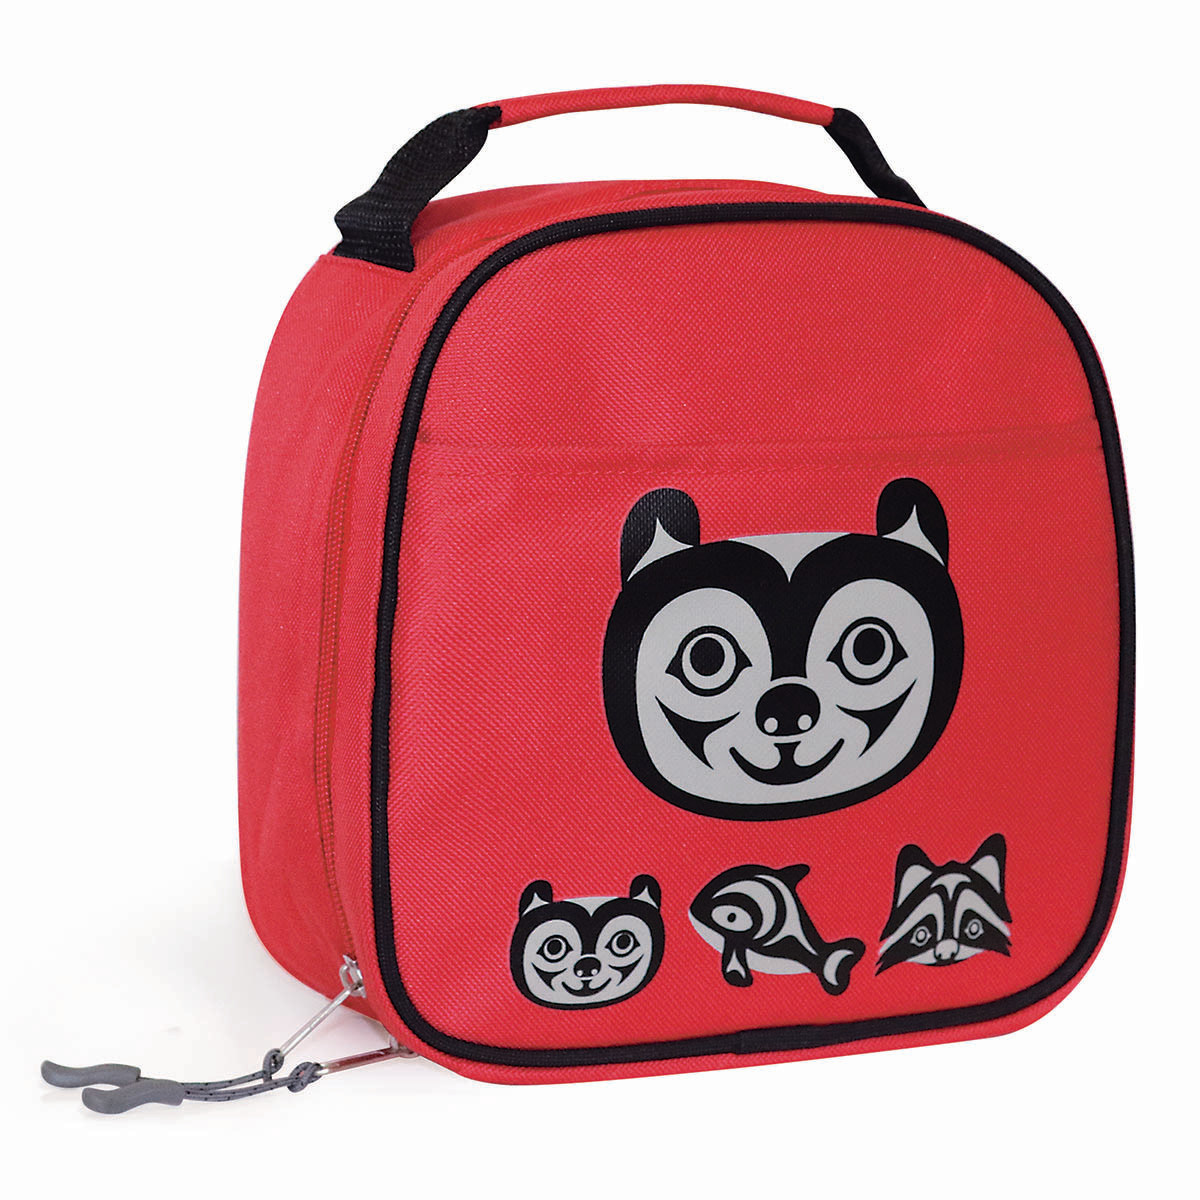 Kids Lunch Bags-2